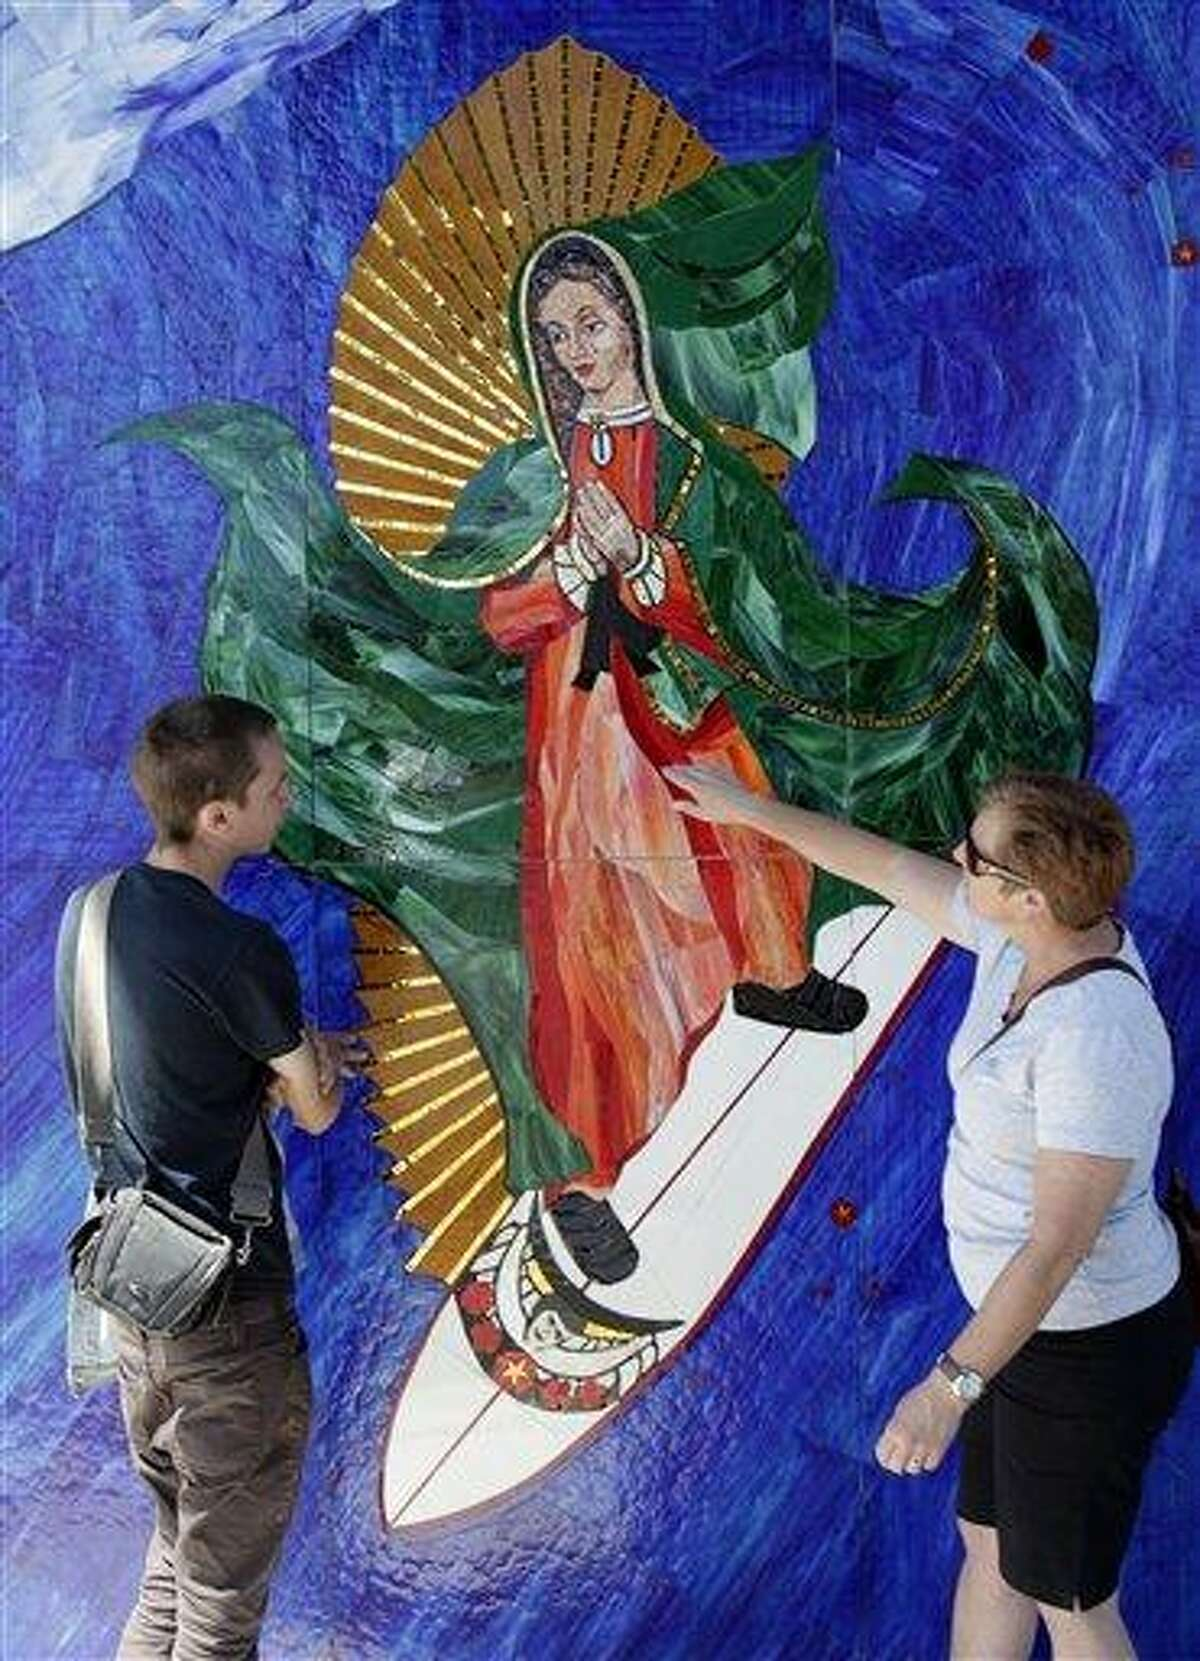 In this May 27, 2011 photo, Anthea Beletsis, right, of Encinitas, Calif., and Jules Itzkoff, of Cincinatti, Ohio, look at an image of the Virgin of Guadalupe riding a surfboard that hangs under a train bridge in Encinitas, Calif. The unauthorized artwork is drawing a mass following, and even city officials who say she must go say they too have been taken by her. (AP Photo/Gregory Bull)